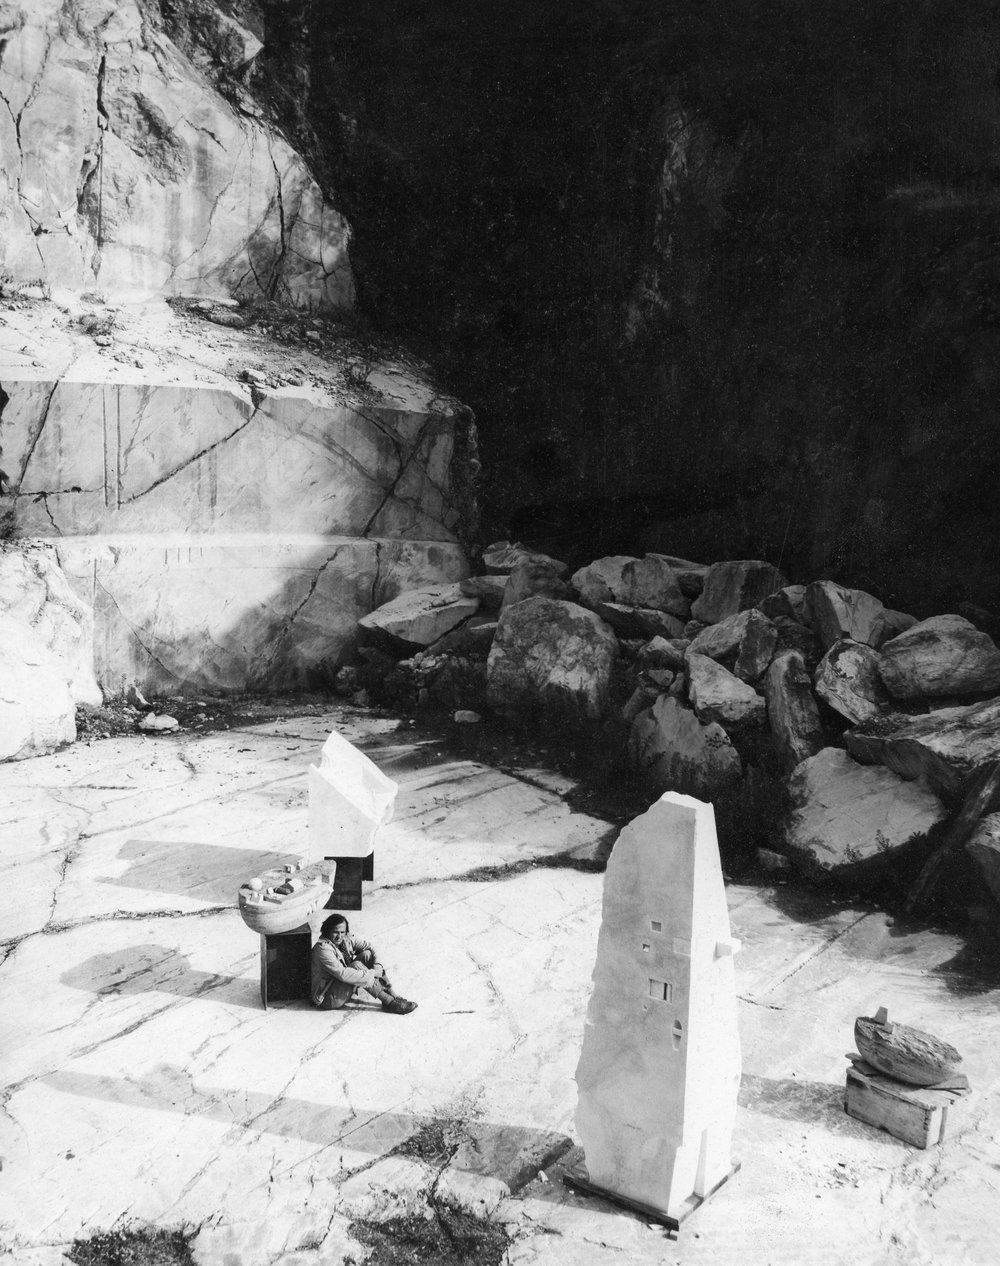 Gonzalo Fonseca in his quarry studio in Saravezza, Italy, 1979. Photo: Estate of Gonzalo Fonseca